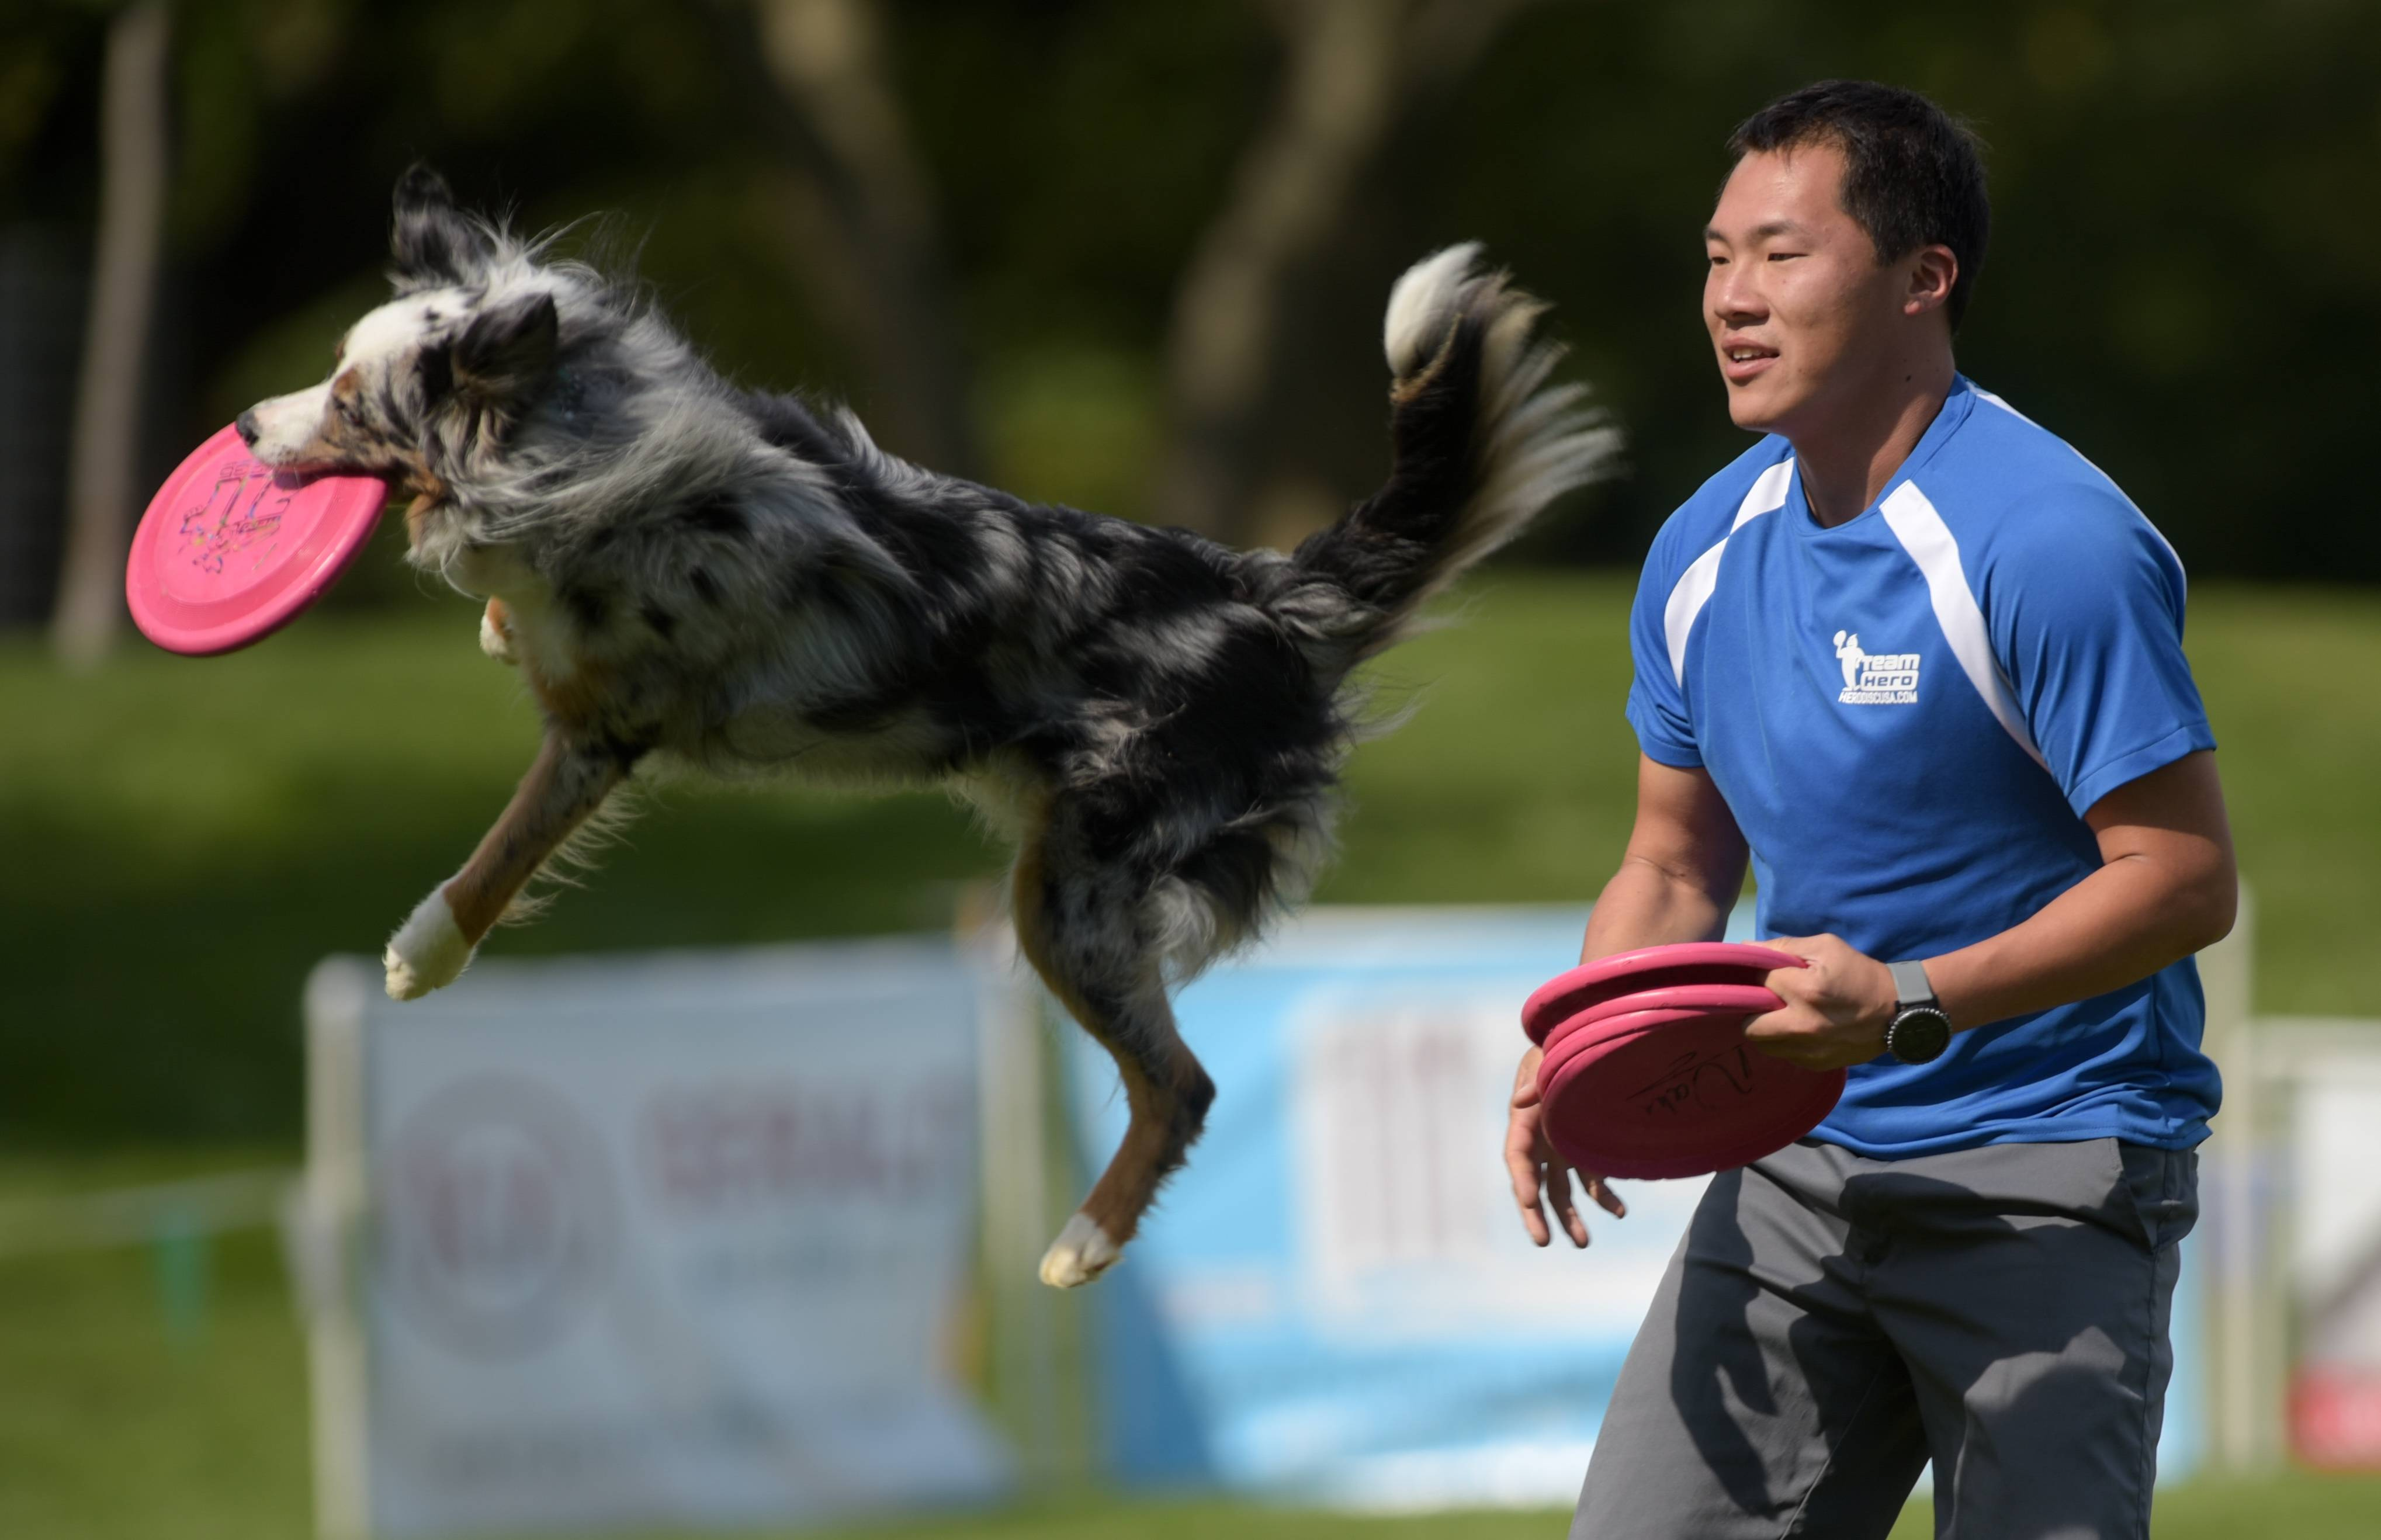 The Ashley Whippet K9 Frisbee World Championships return to Naperville Saturday and Sunday, Sept. 2 and 3, but at a new location — the Nike Sports Complex.